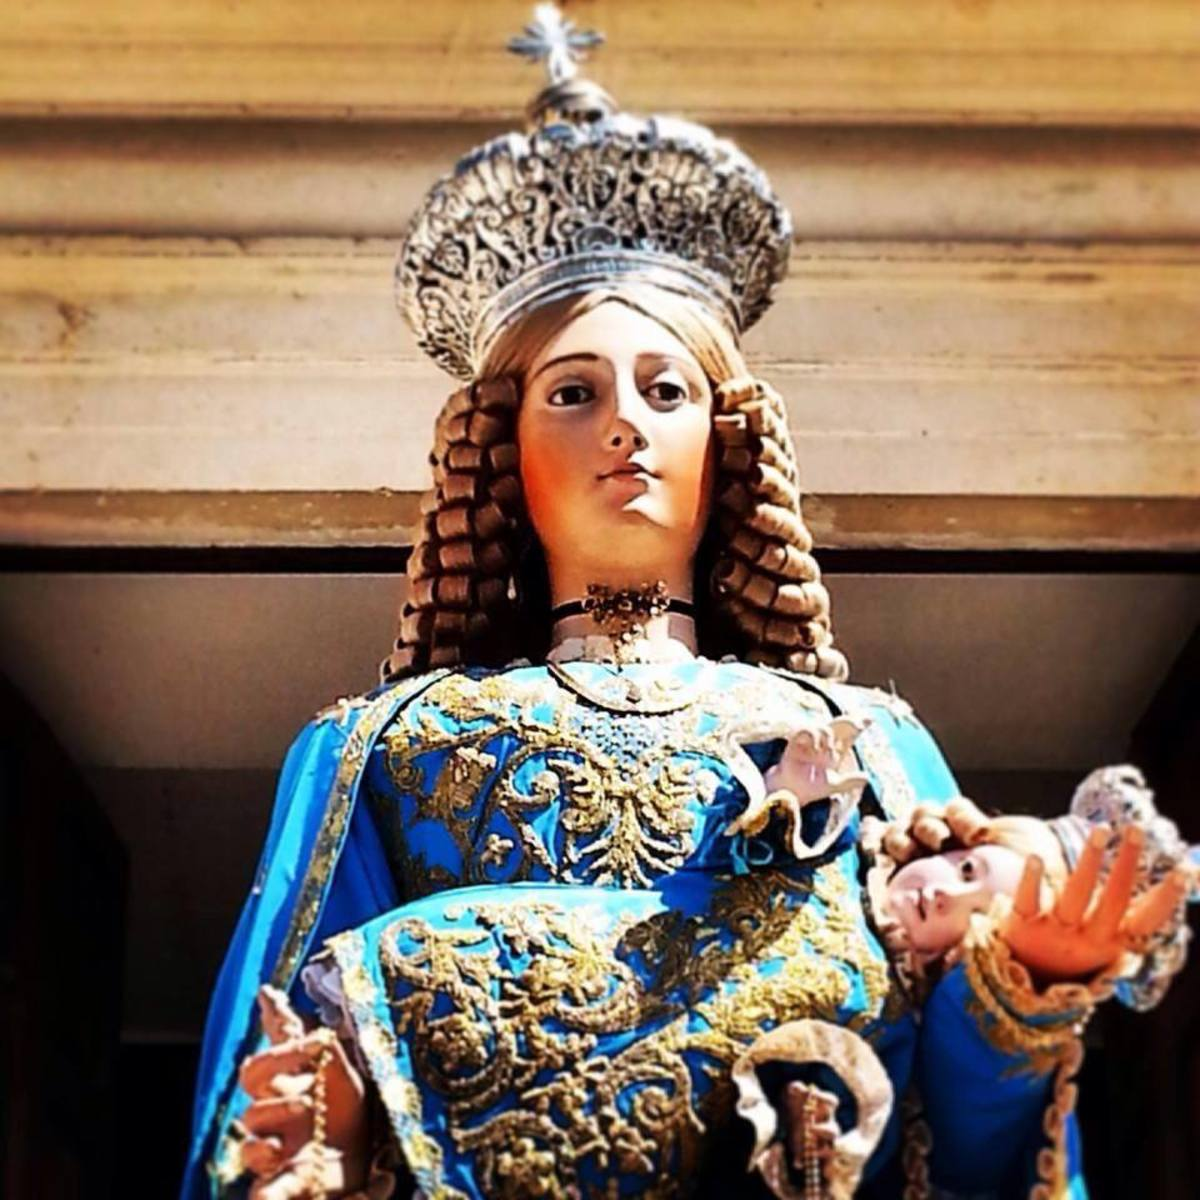 This statue of the Madonna is a beautiful statue that replace the real icon of Maria Santtissima delle Grazie. You see the real icon Madonna is a relic that is kept in the church wall high above the high alter, it is rare that this icon is taken out.